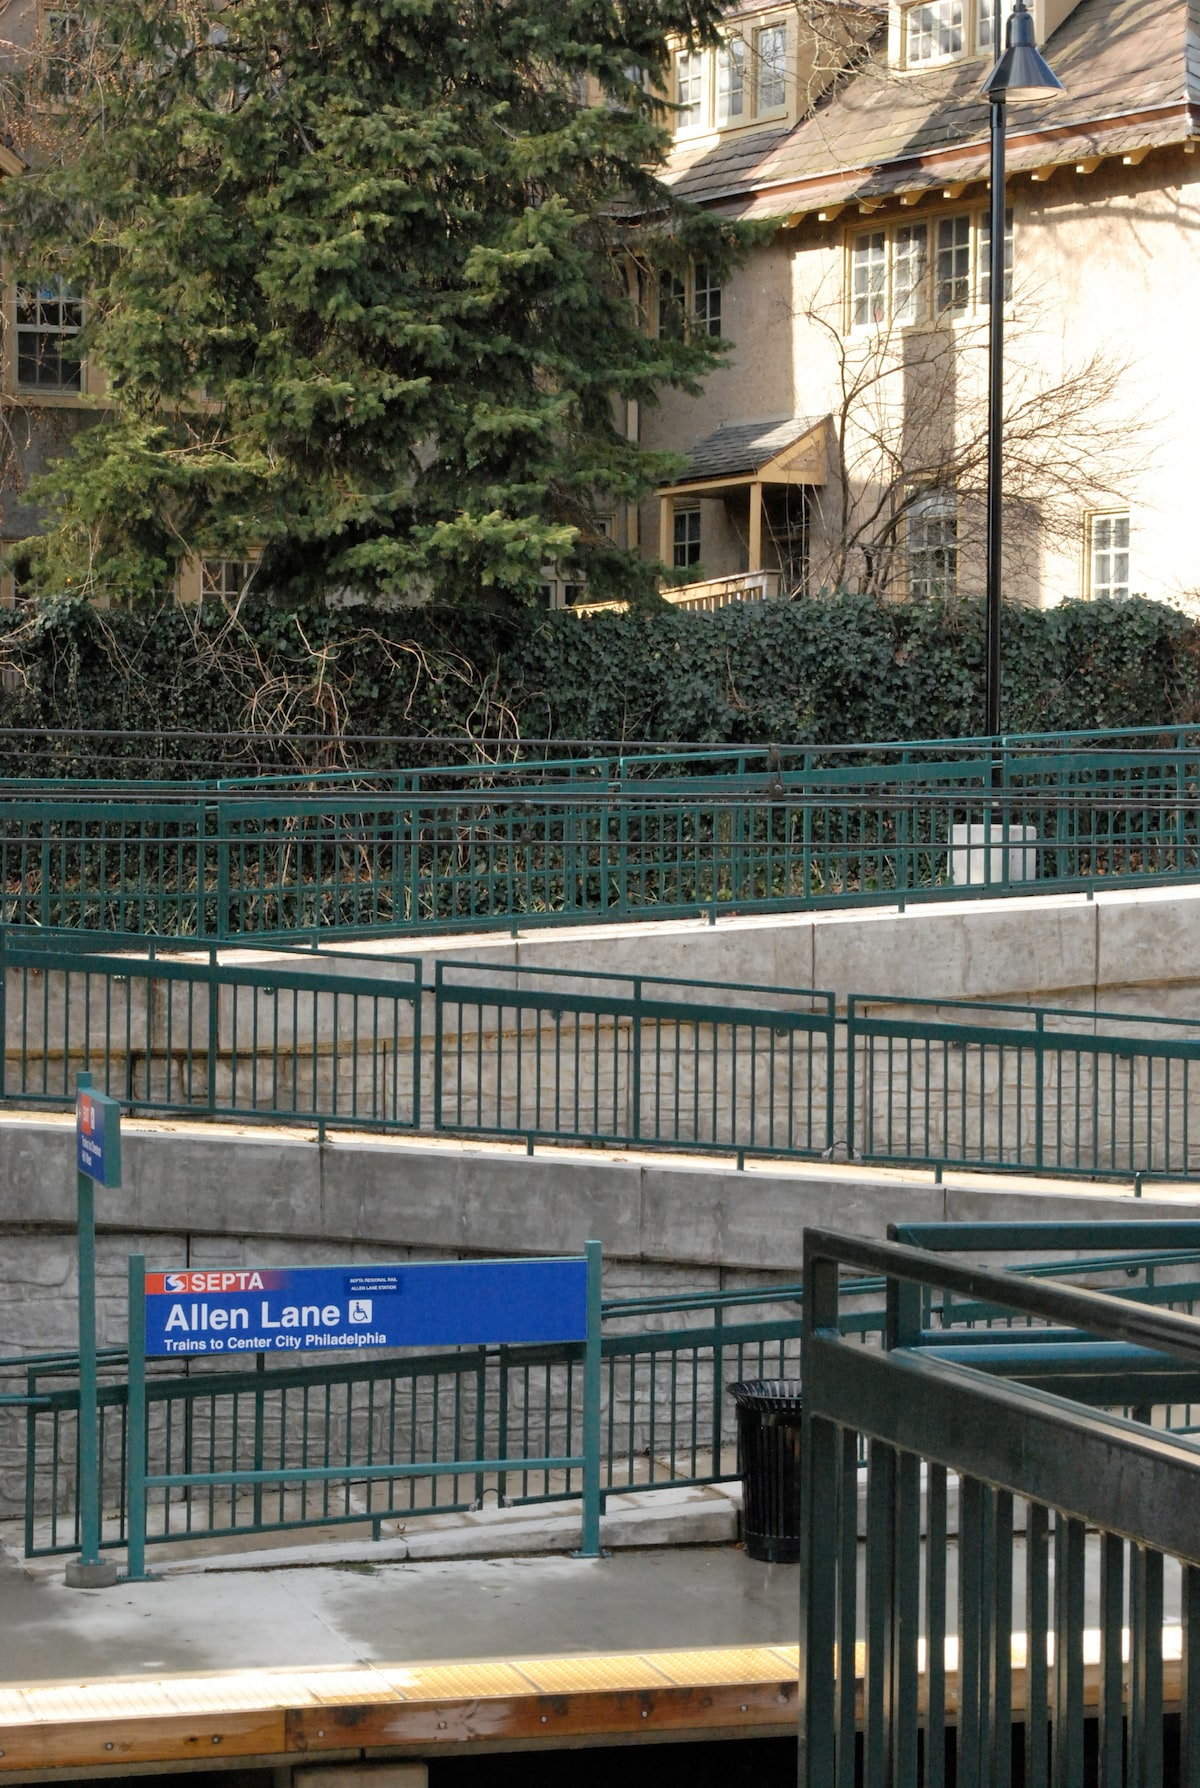 Allen Lane Septa Train Stop on the Chestnut Hill West line gets you downtown in 20 minutes.